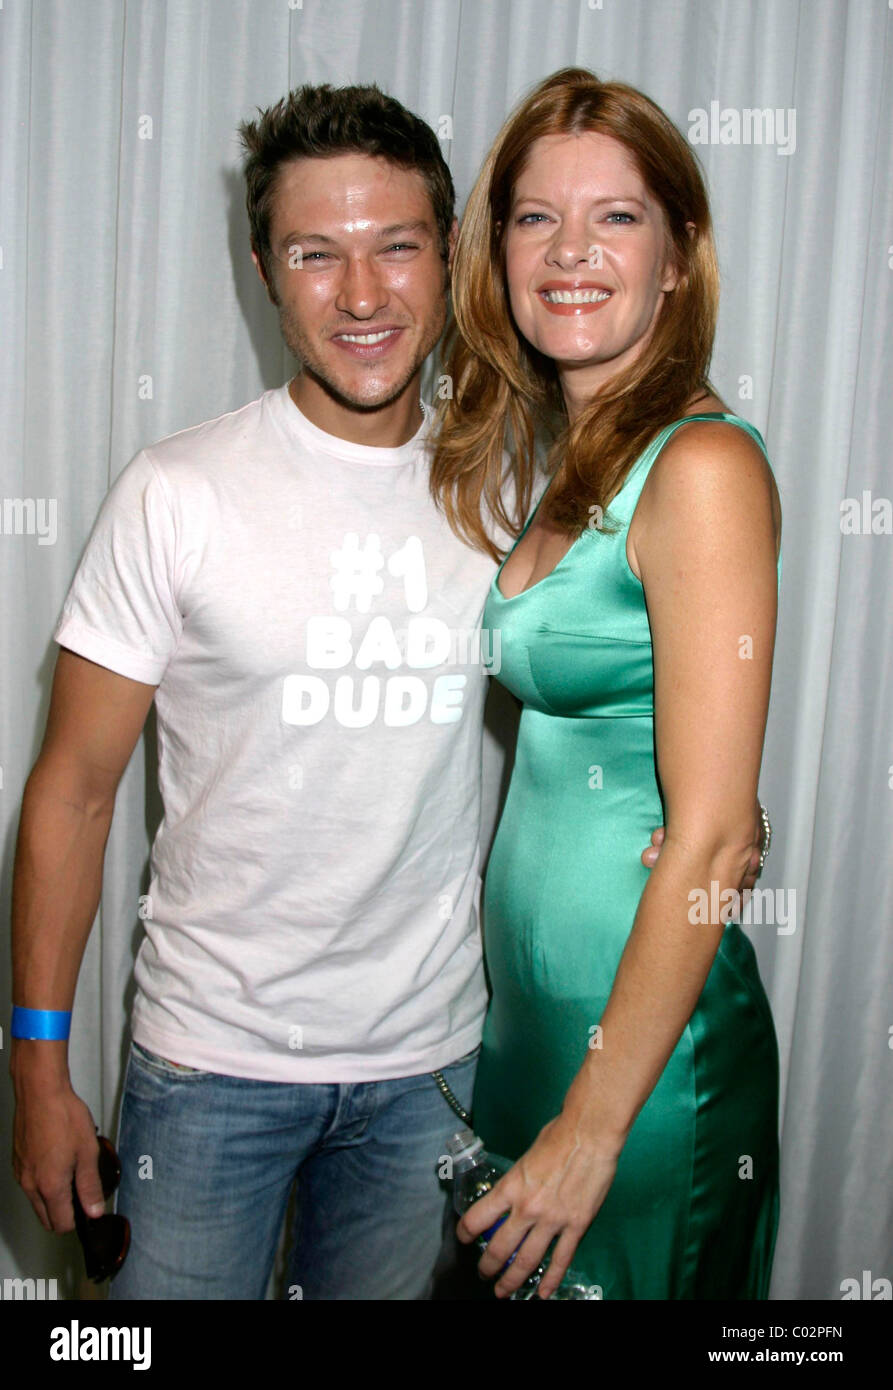 Michael Graziadei And Michelle Stafford The Young And The Restless Stock Photo Alamy